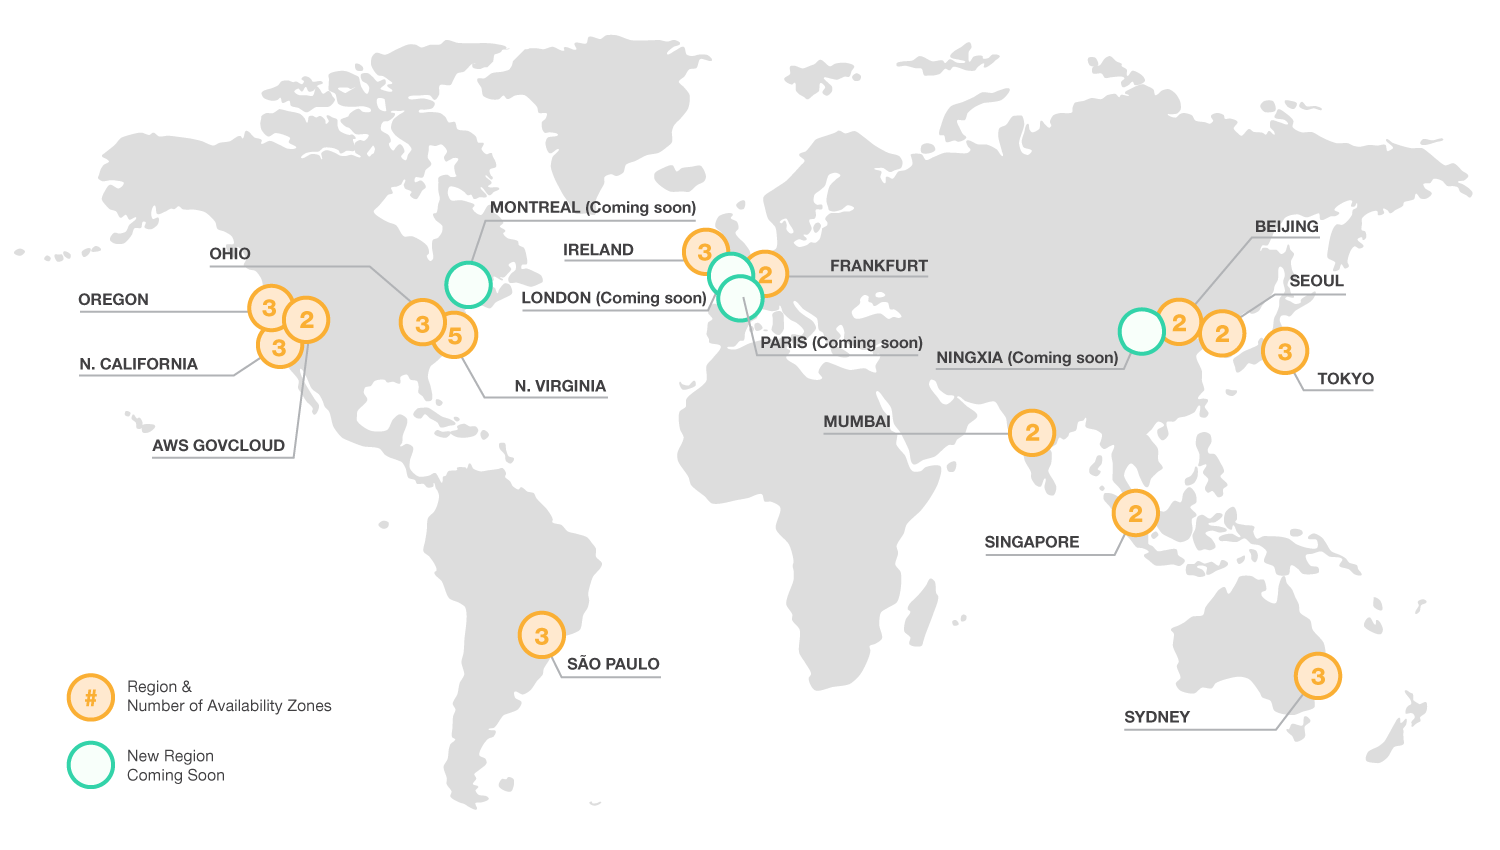 AWS regions map